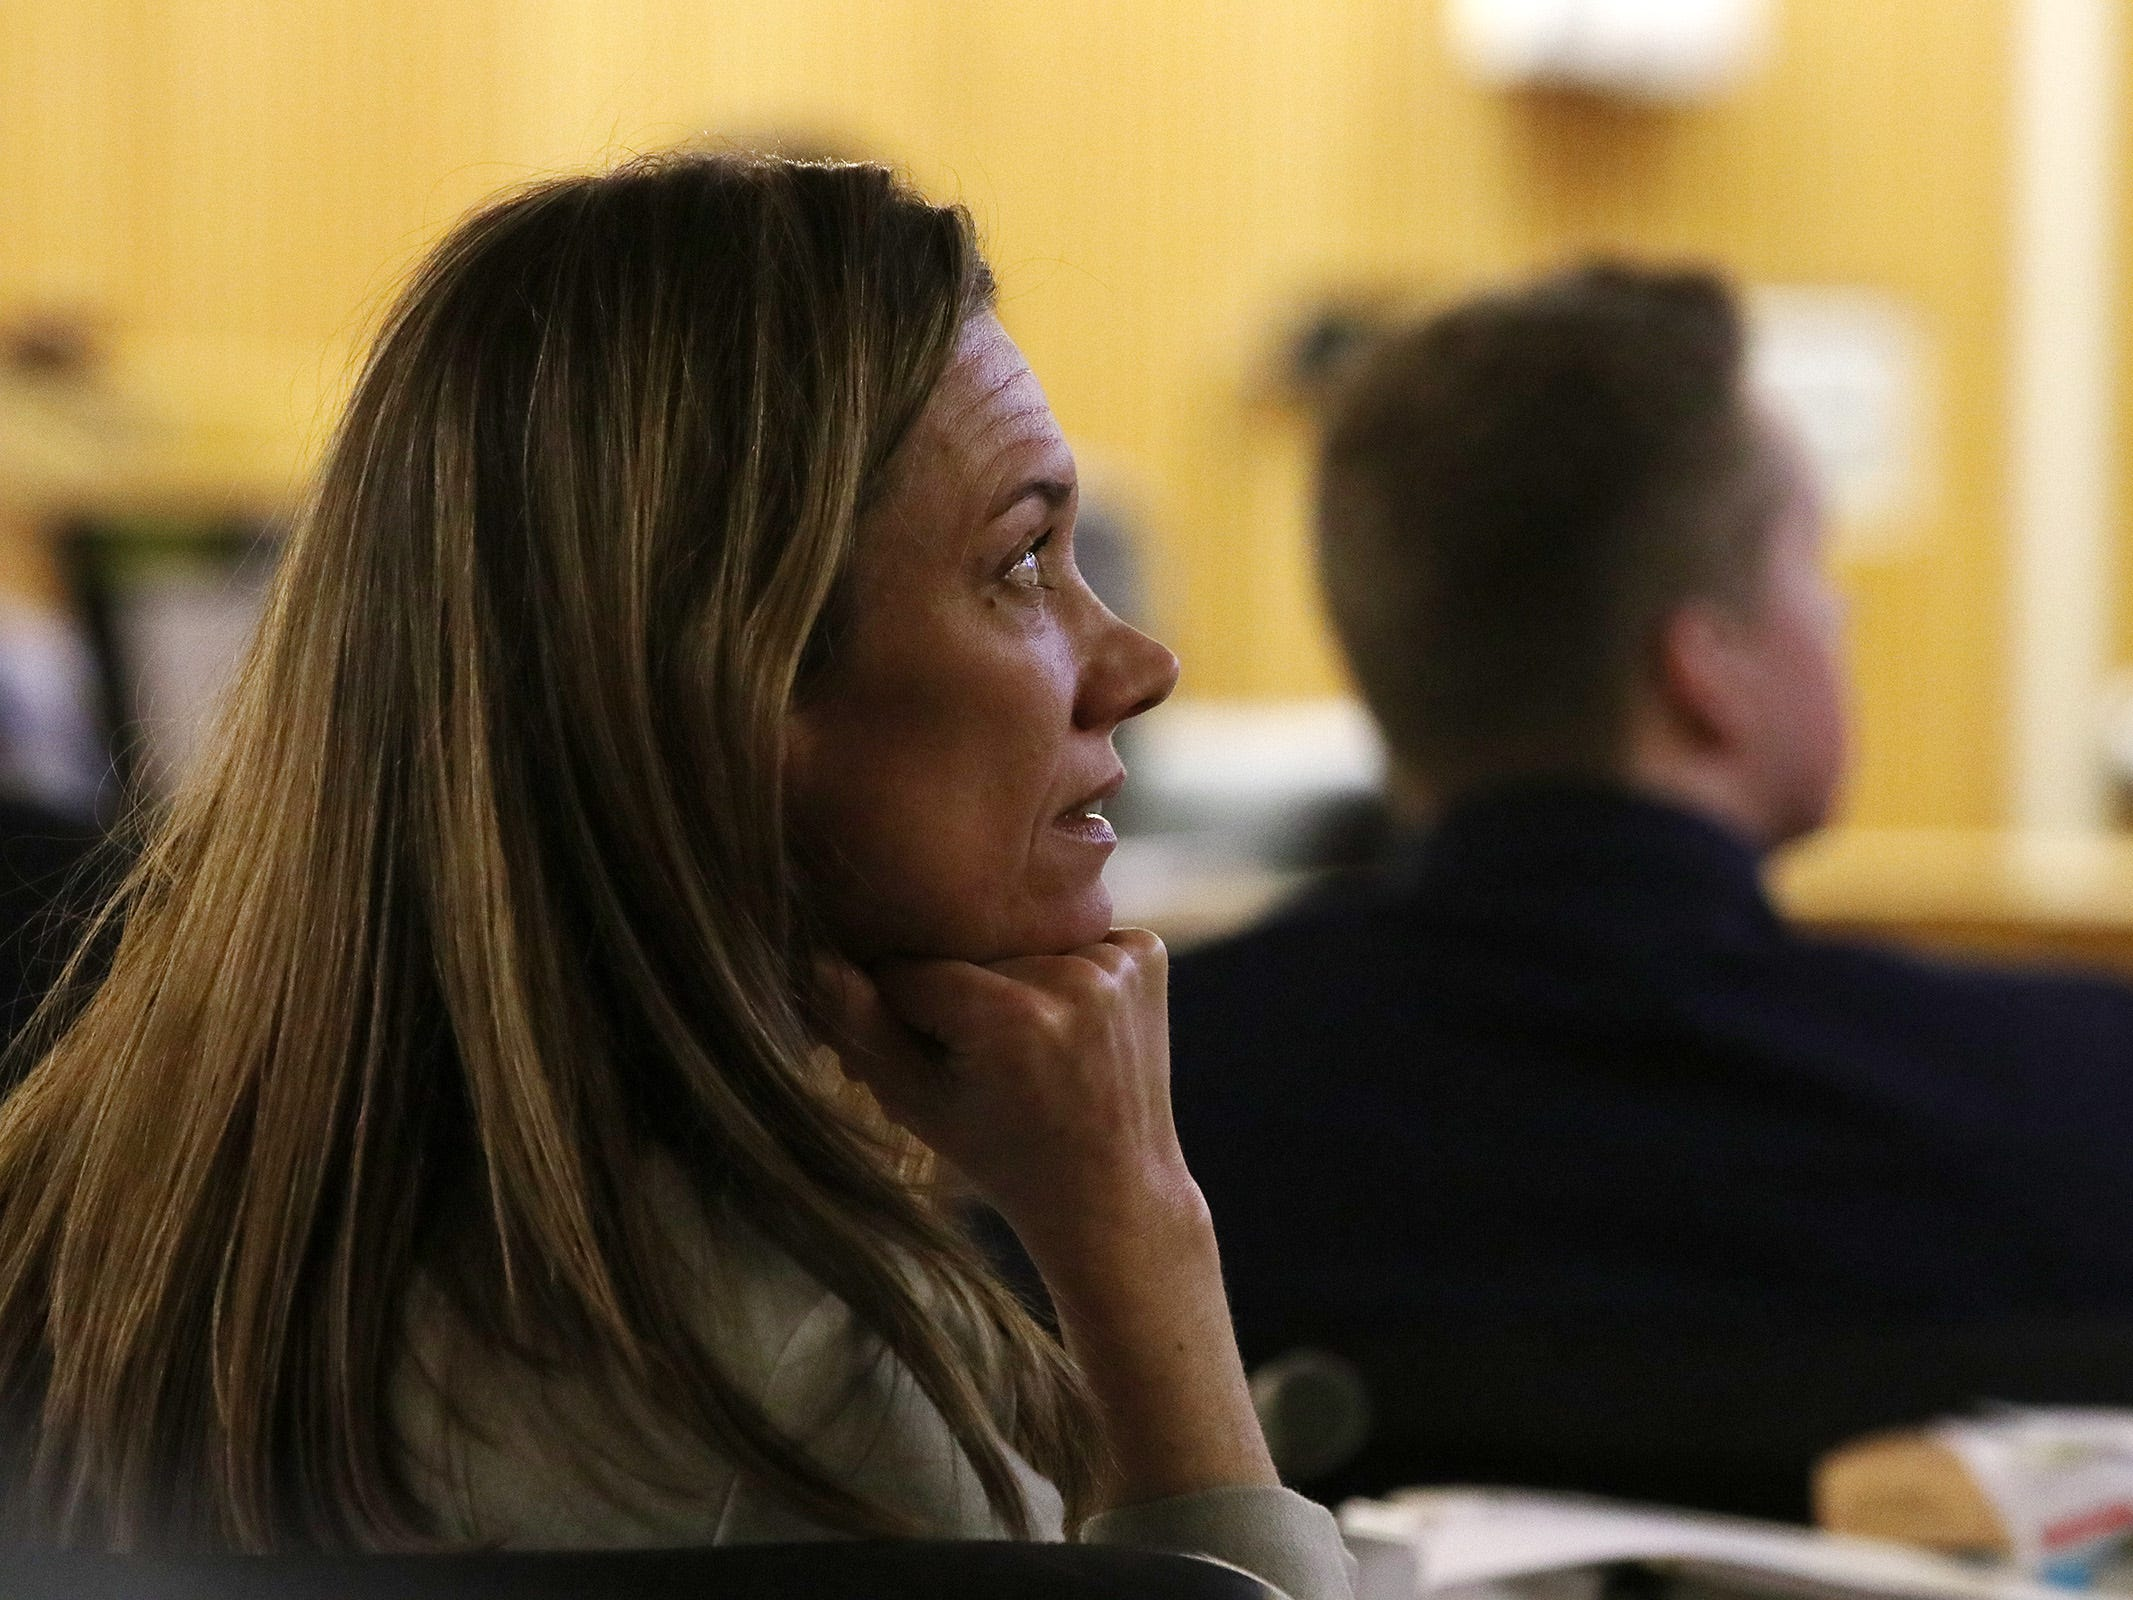 Meghan Doyle, assistant Monmouth County prosecutor, watches as an interview between Liam McAtasney and detectives at the Belmar police station on December 6, 2016 is played during the trial of Liam McAtasney, who is charged with the murder of former high school classmate, Sarah Stern, before Superior Court Judge Richard W. English at the Monmouth County Courthouse in Freehold, NJ Wednesday, February 6, 2019.